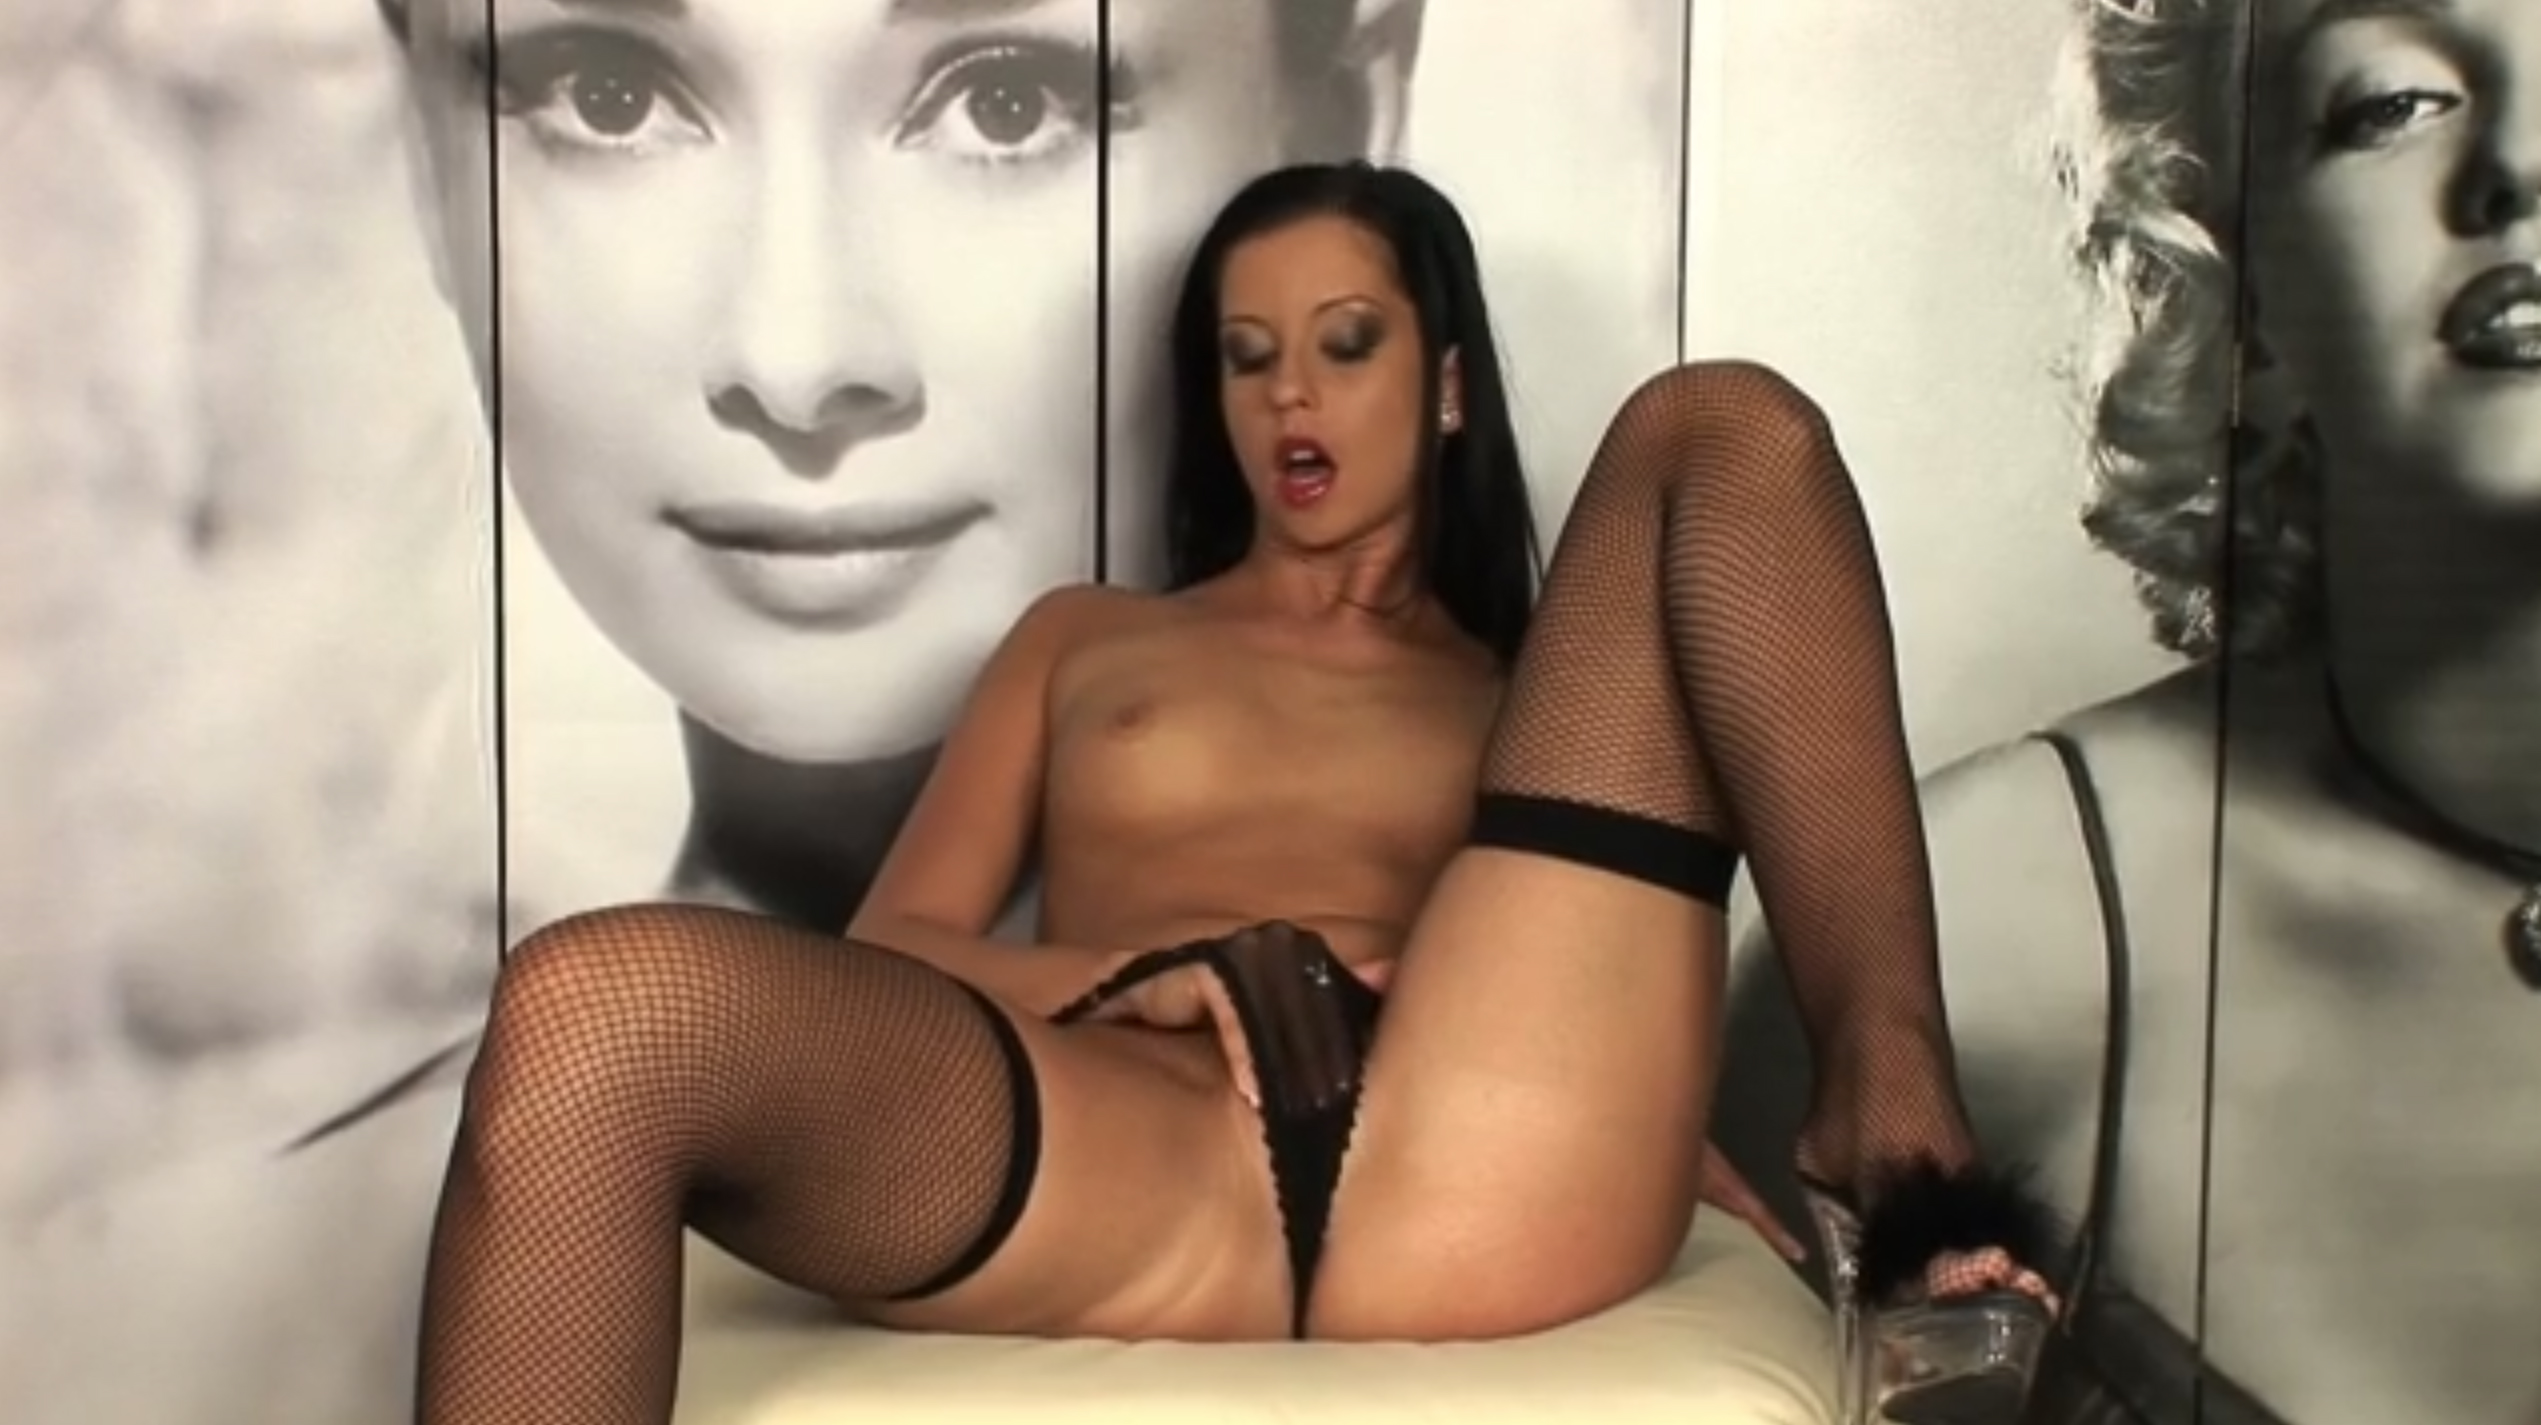 Hot chick enjoys in pussy dildoing and fingering